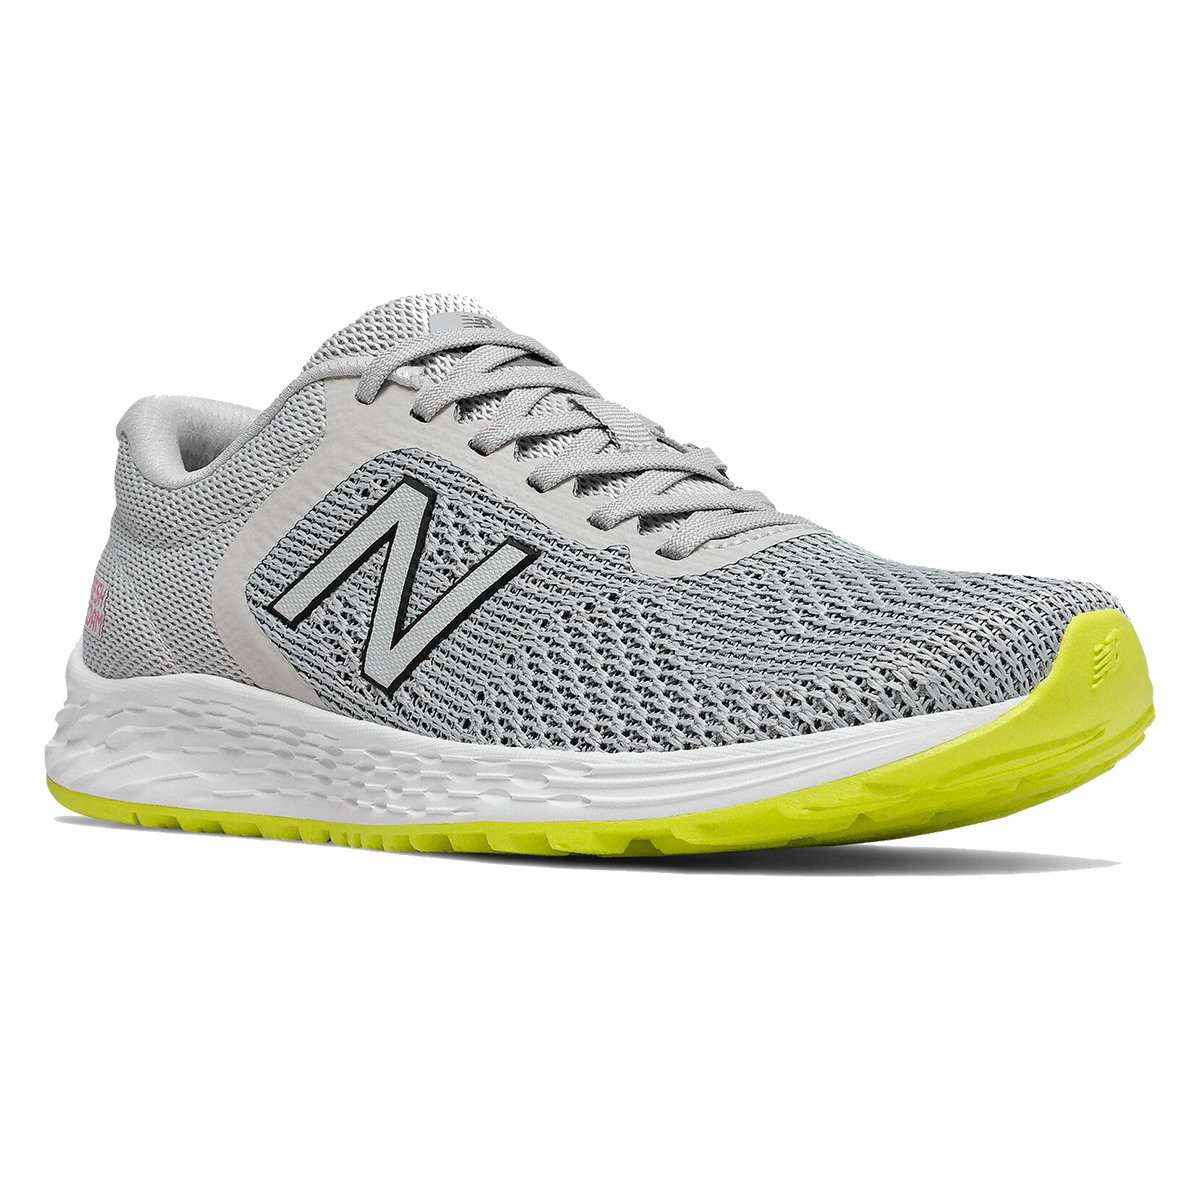 New Balance Women's Fresh Foam Arishi V2 Sneakers - Black, 11